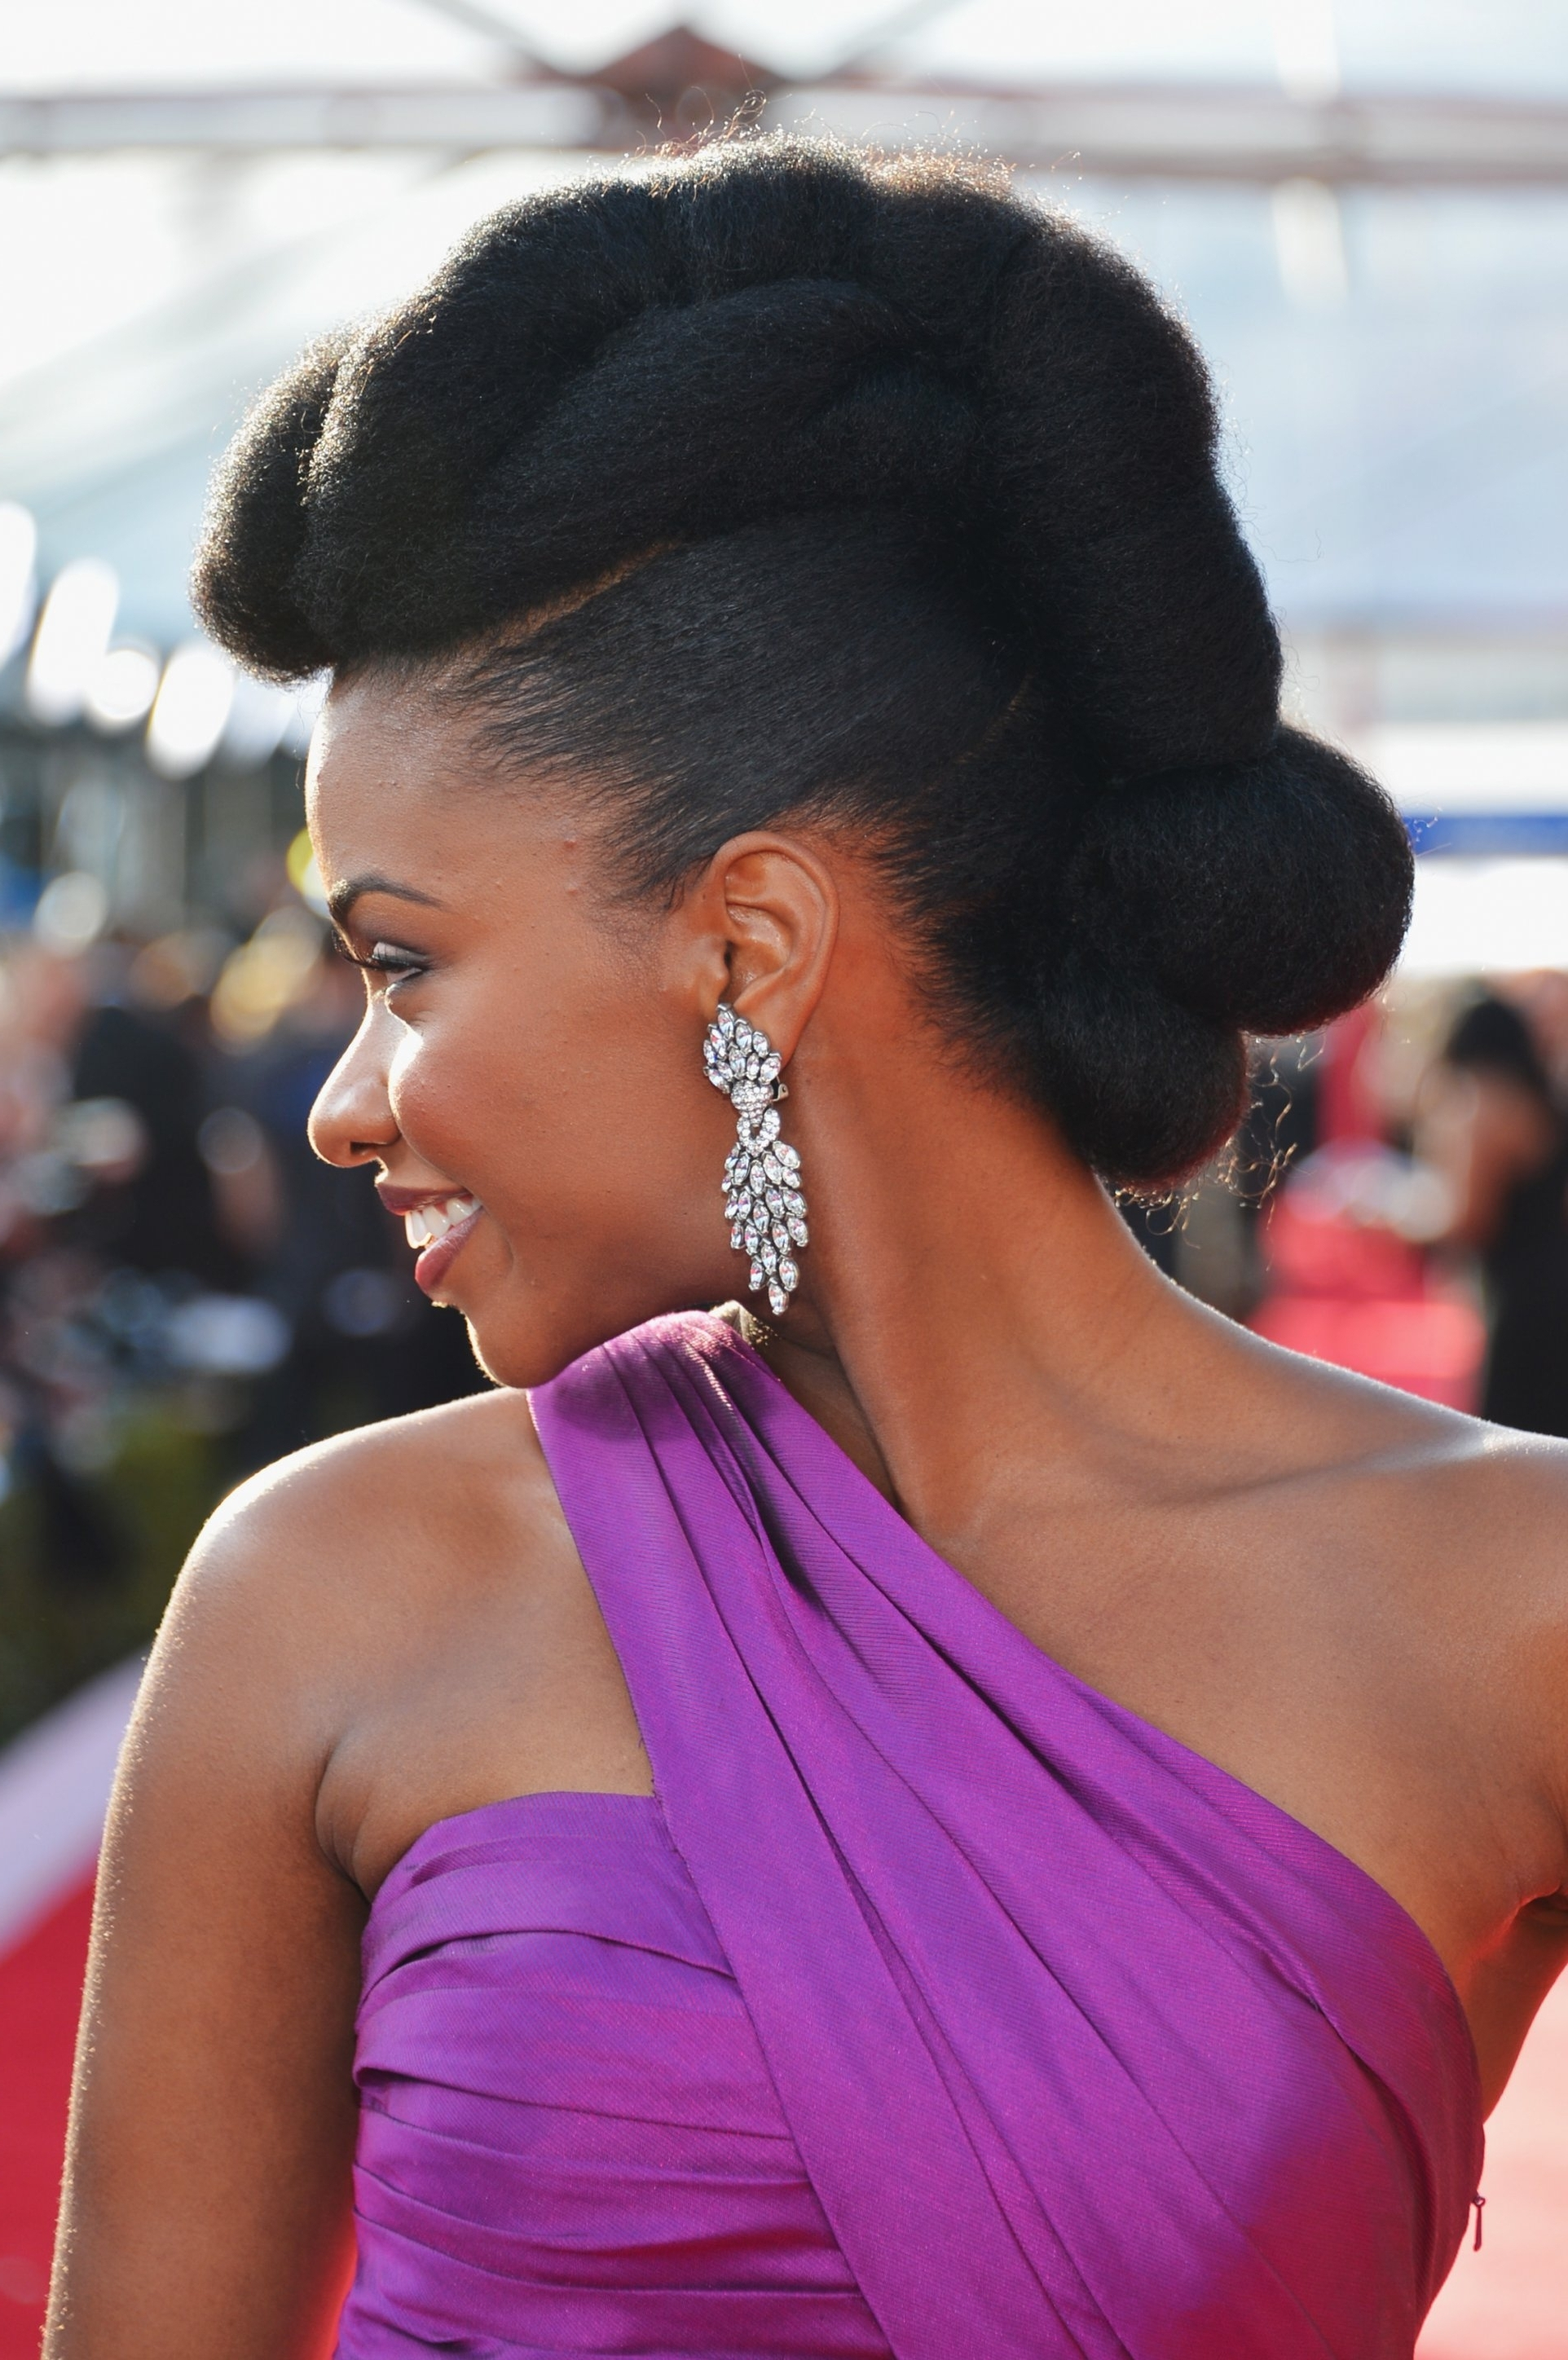 Current Wedding Hairstyles For Short Natural Black Hair Regarding 25+ Easy Natural Hairstyles For Black Women – Ideas For Short In (View 13 of 15)